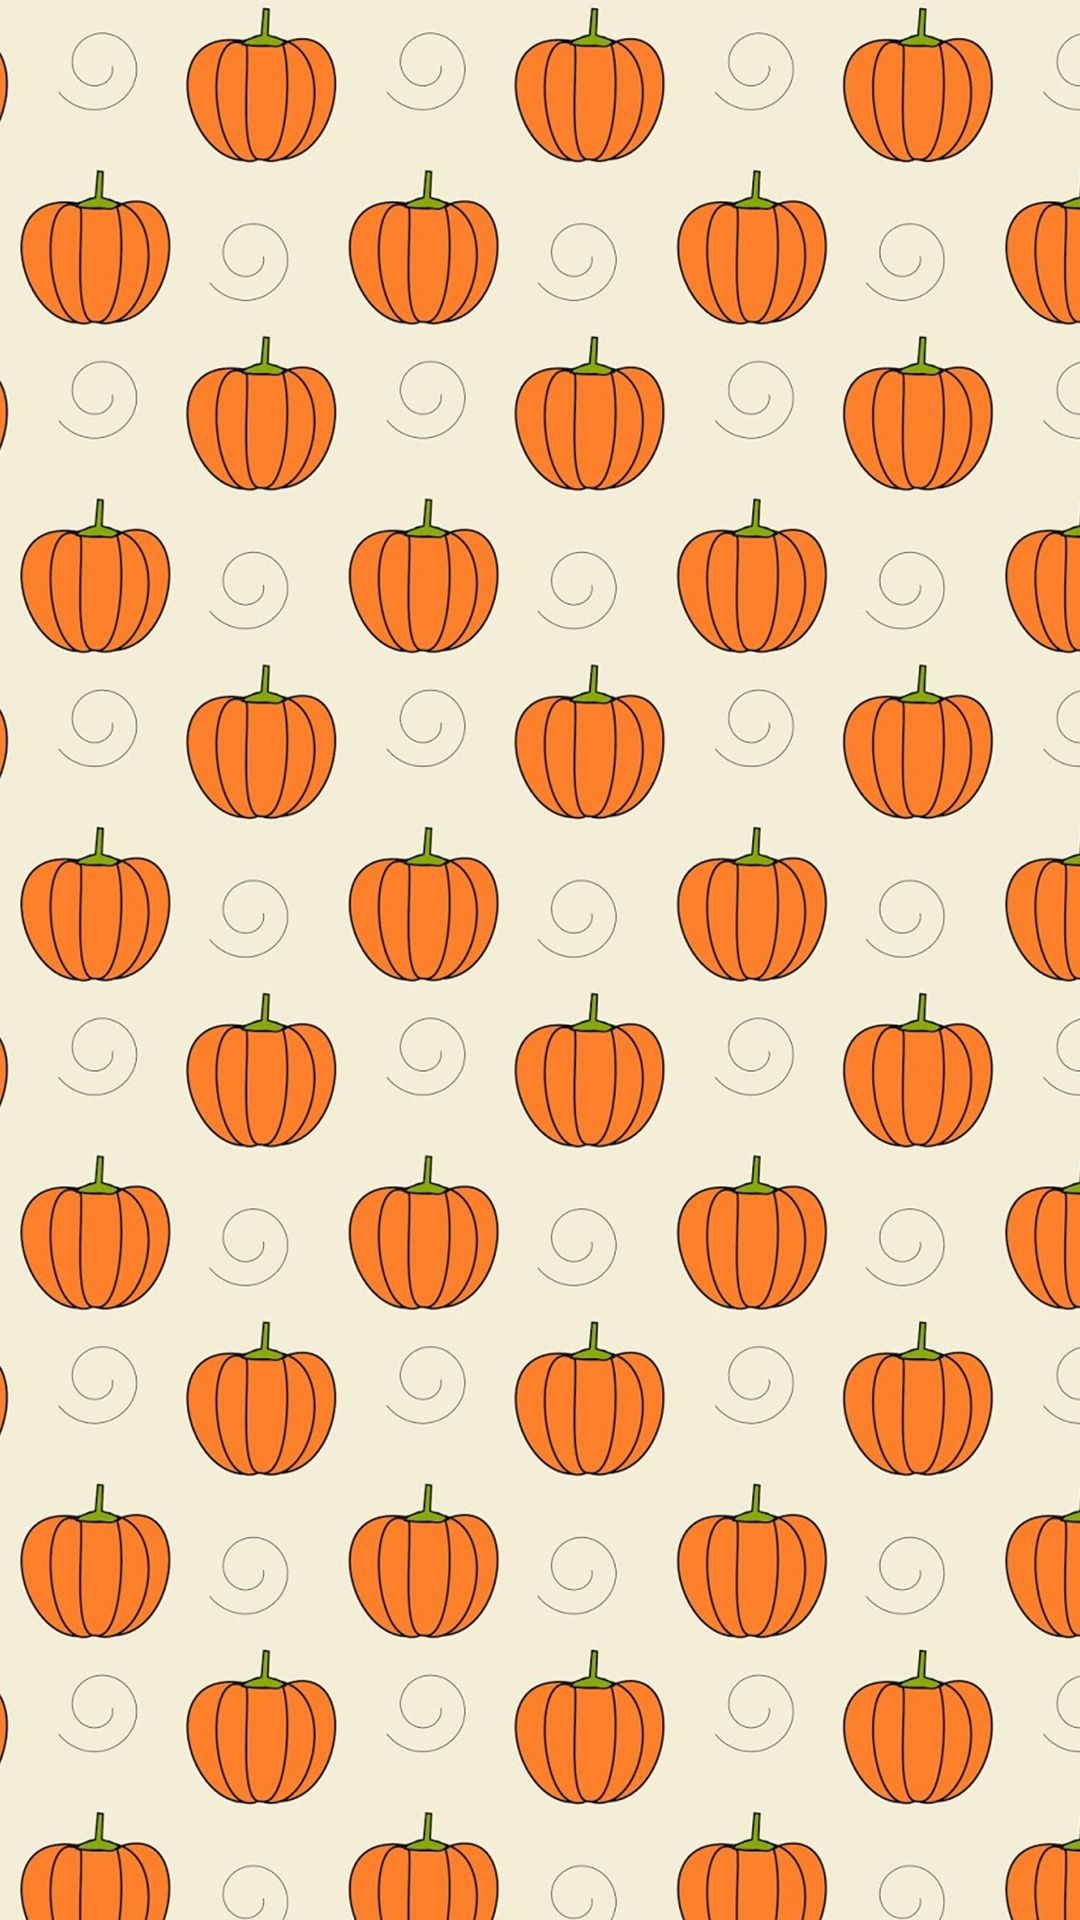 Pumpkins Tap To See More Cute Halloween Wallpaper Mobile9 Wallpaper Legais Planos De Fundo Gatinho Kawaii